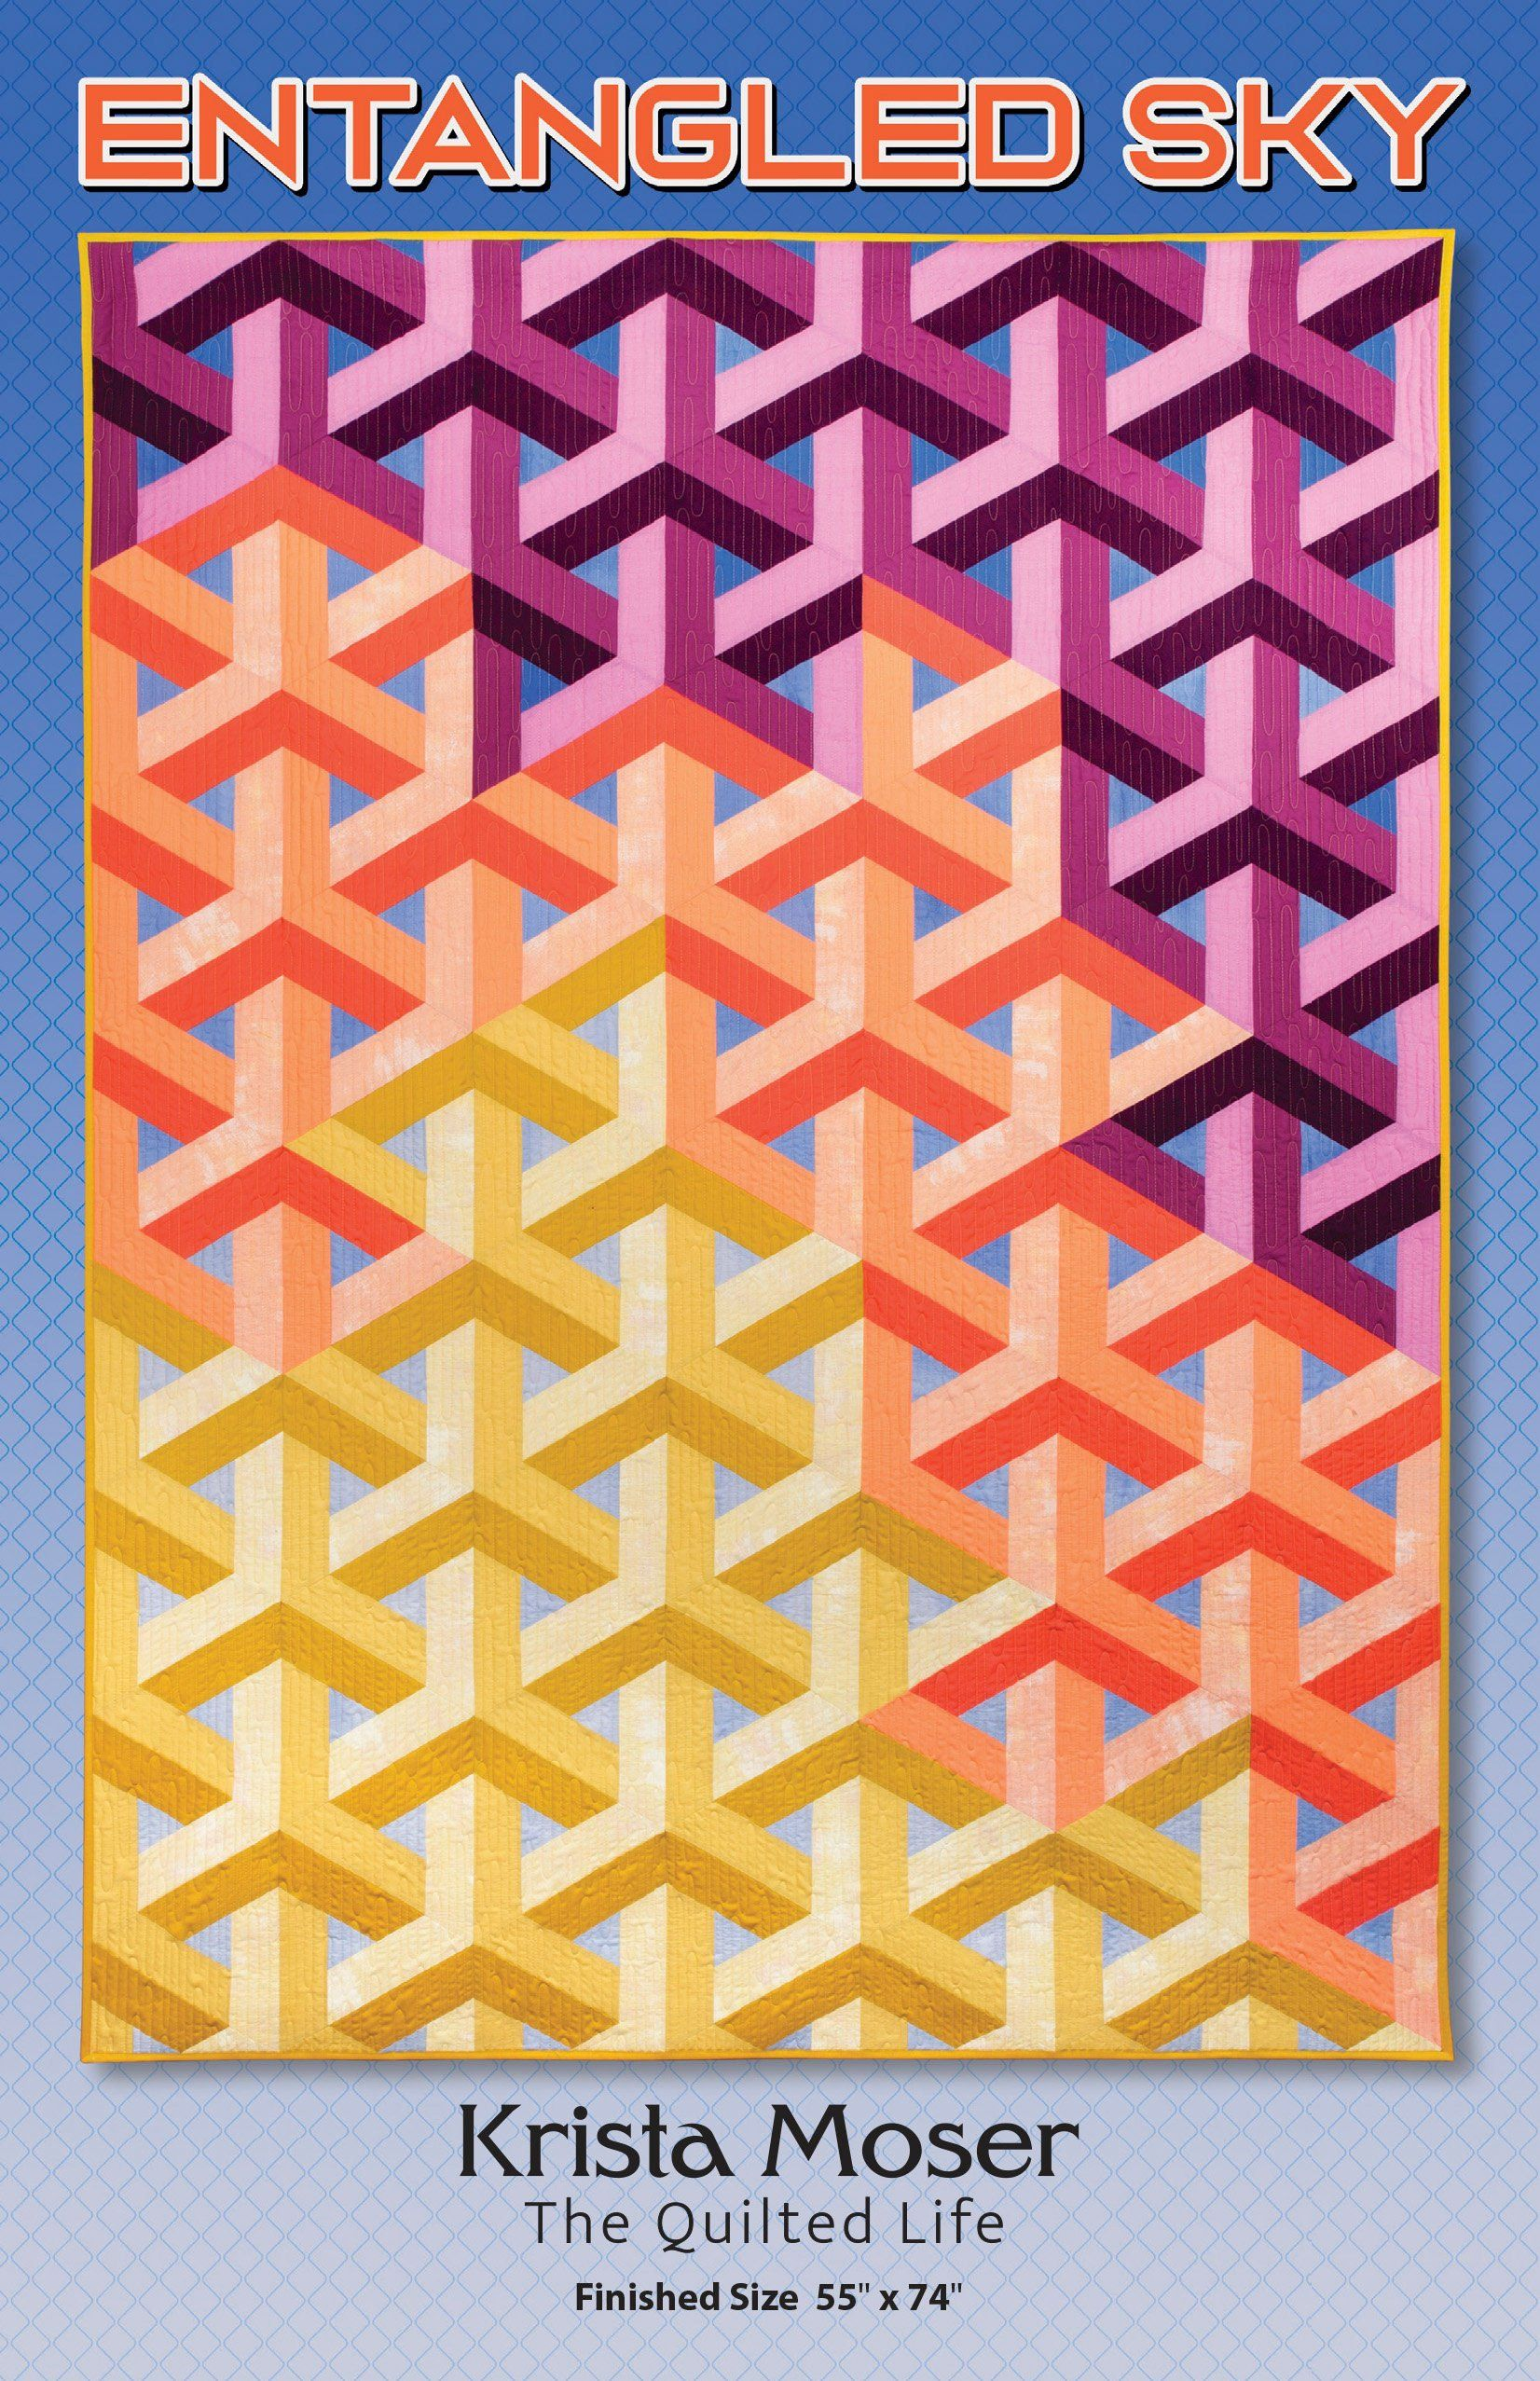 Entangled Sky, Krista Moser, The Quilted Life, Modern Quilt